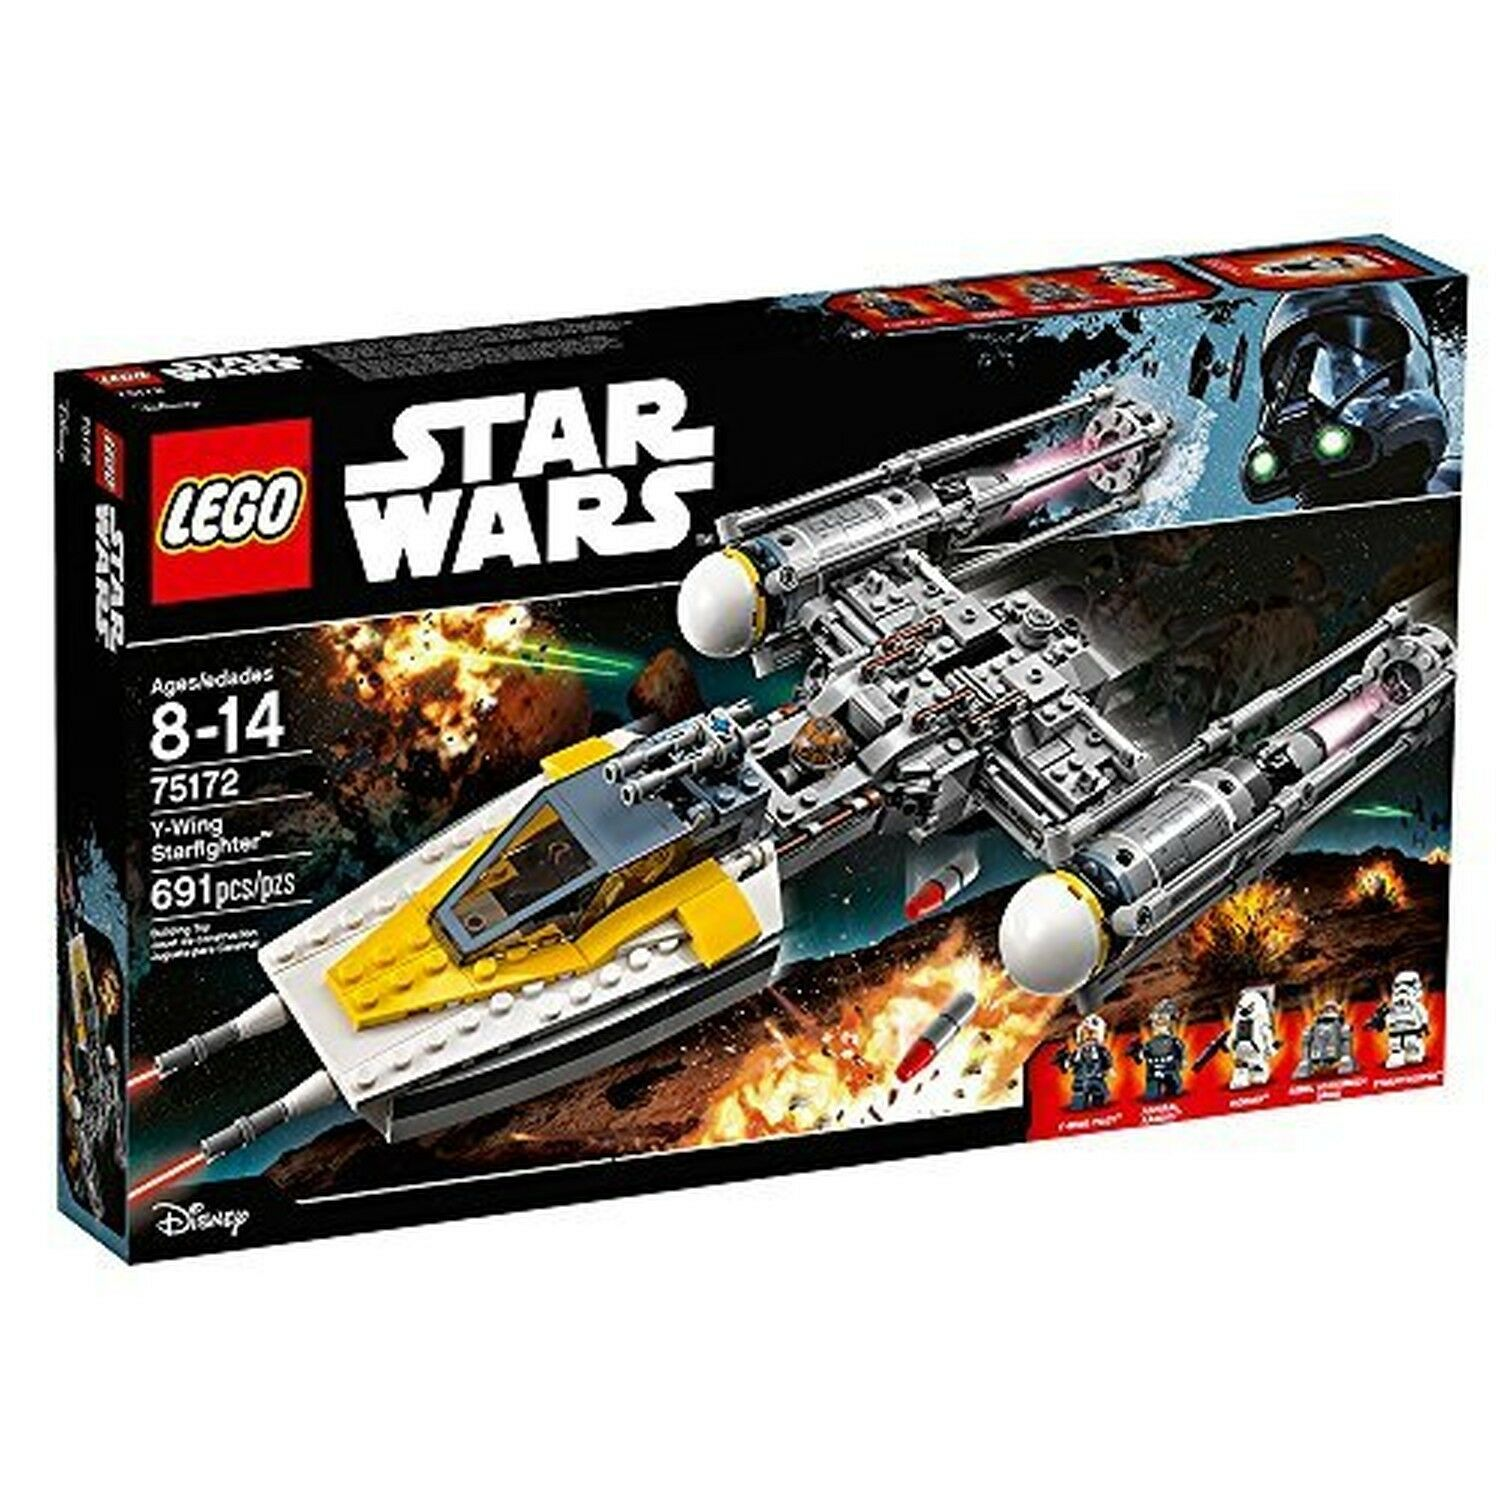 LEGO Star Wars Y-Wing Starfighter è 75172 giocattolo di Star Wars